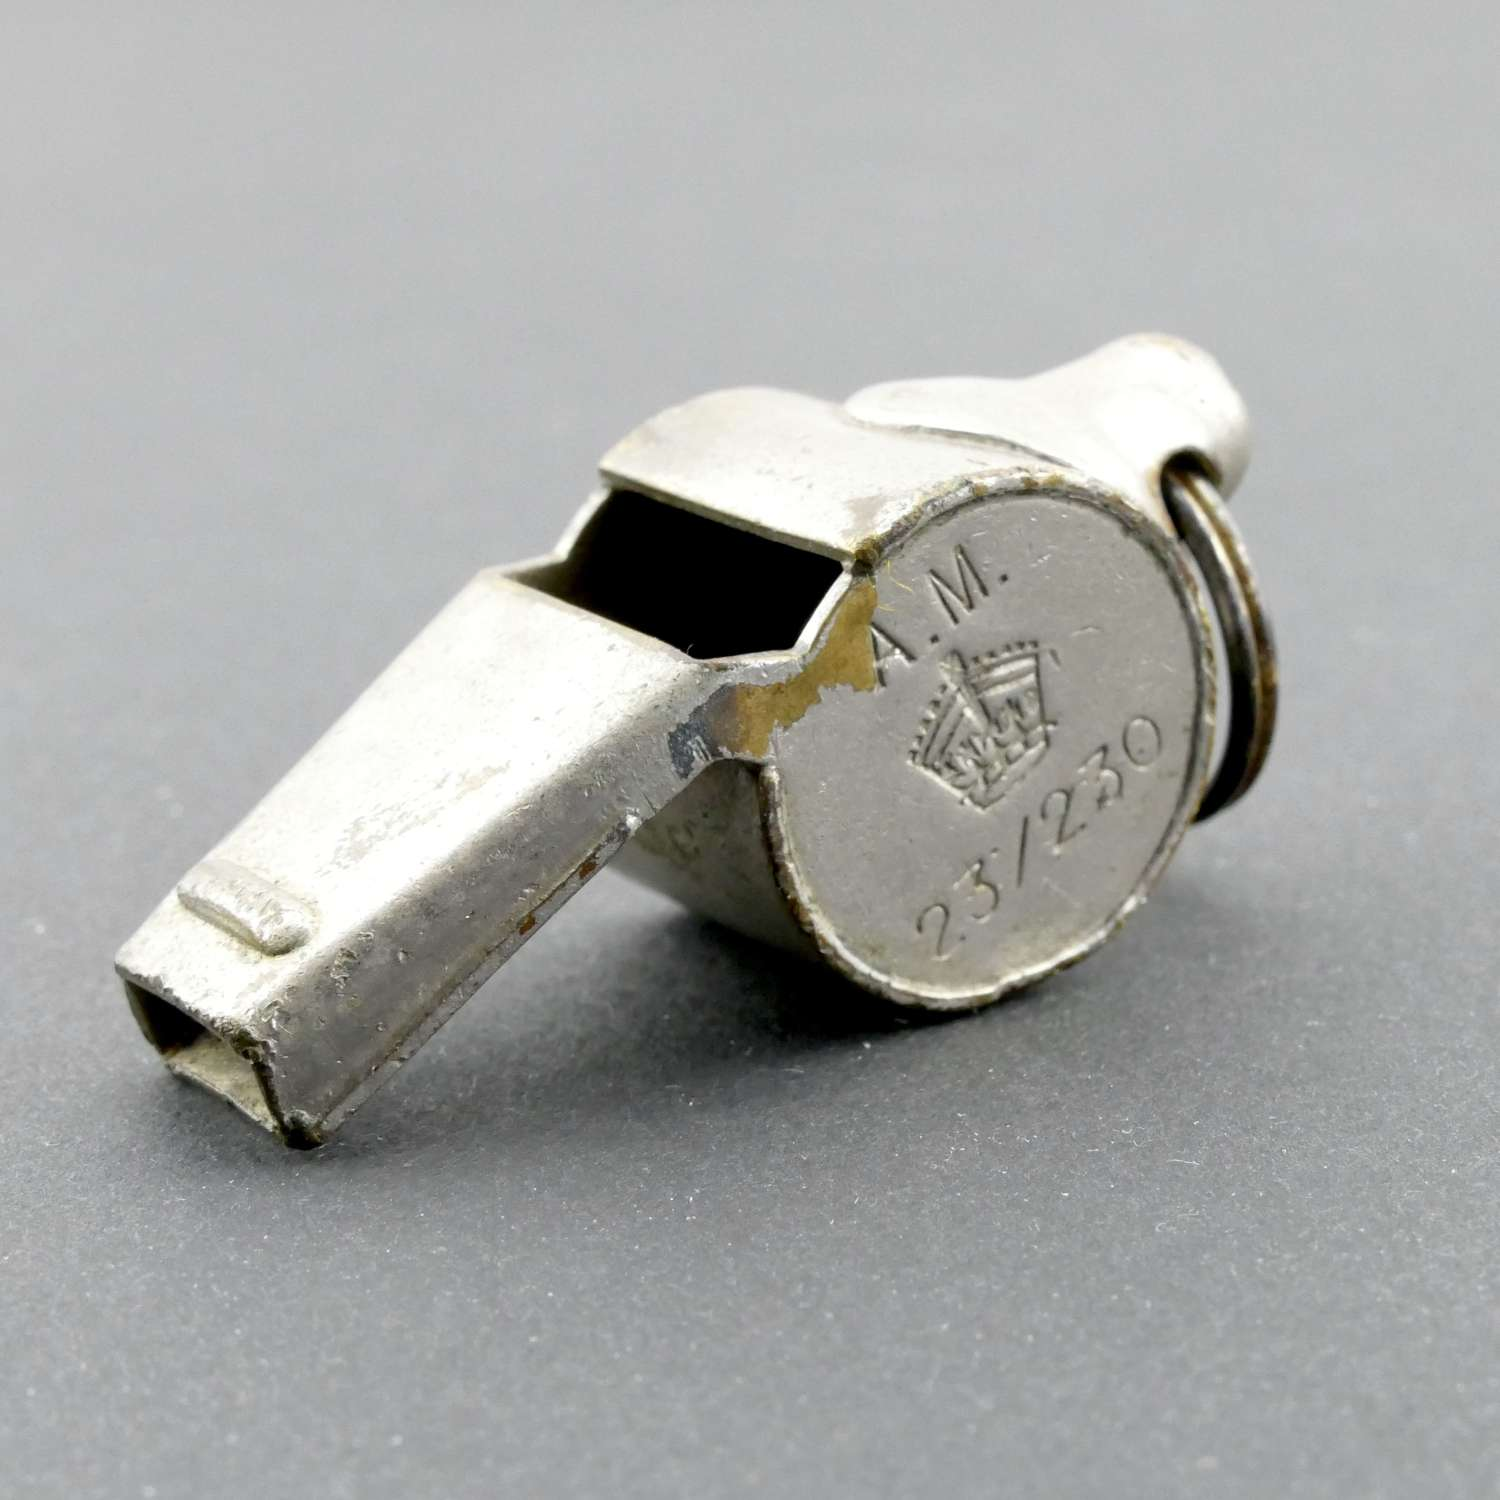 RAF / Air Ministry 'ditching' whistle